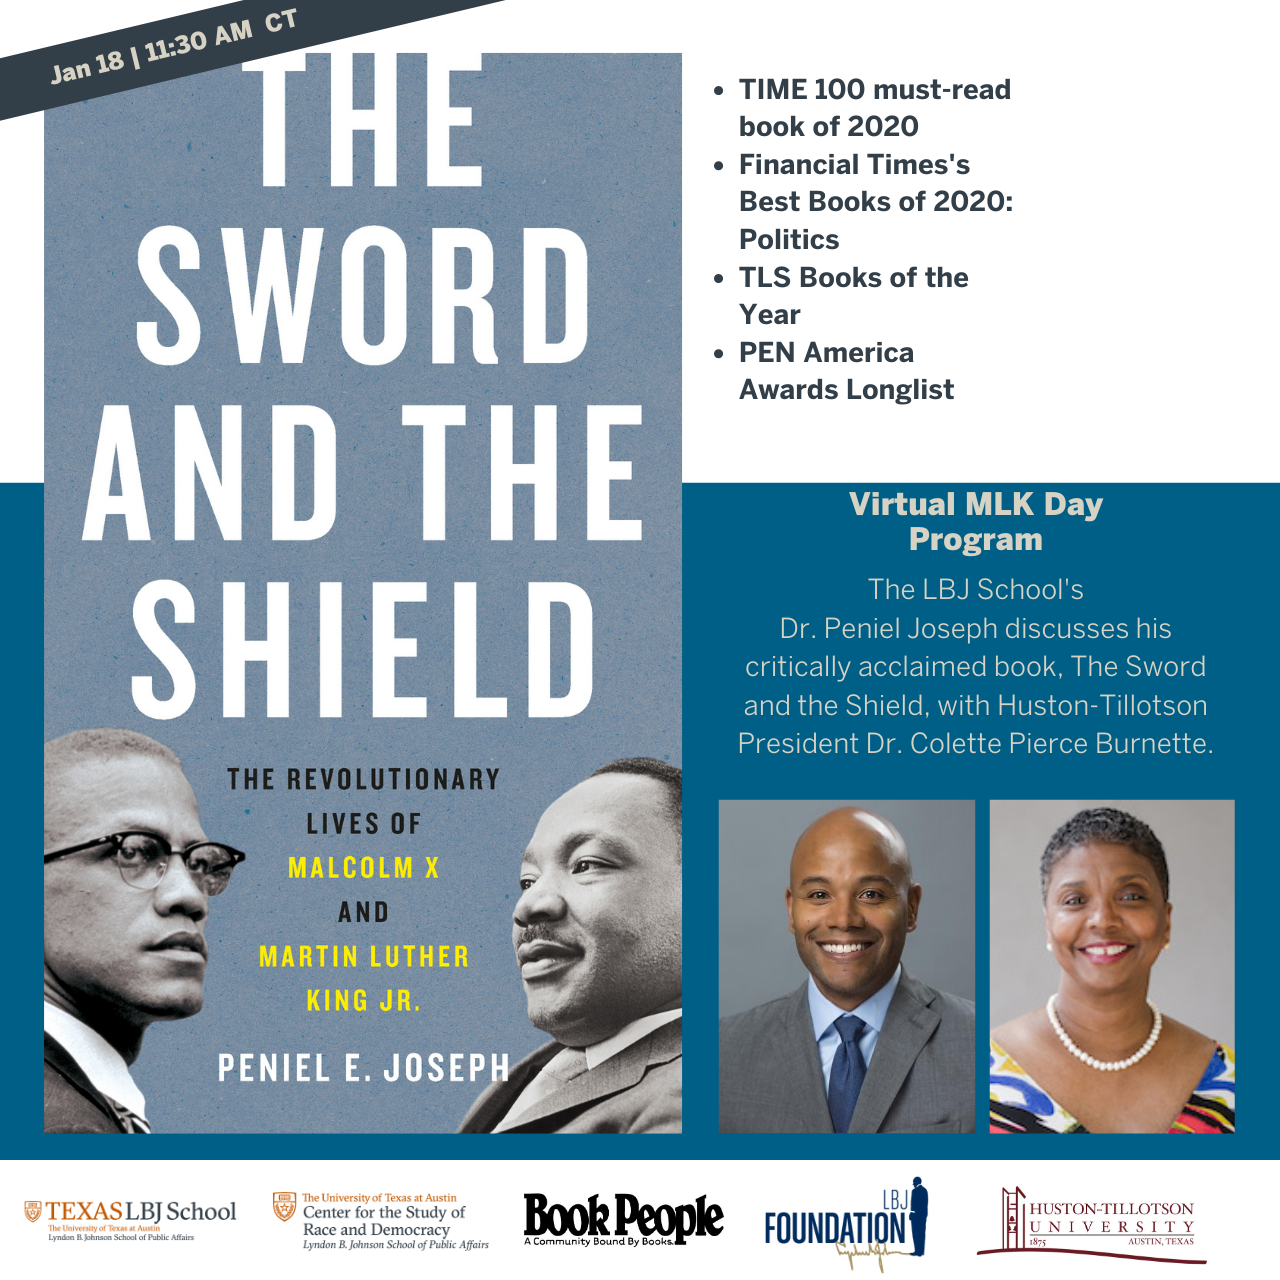 MLK Day Virtual Program: 'The Sword and The Shield'